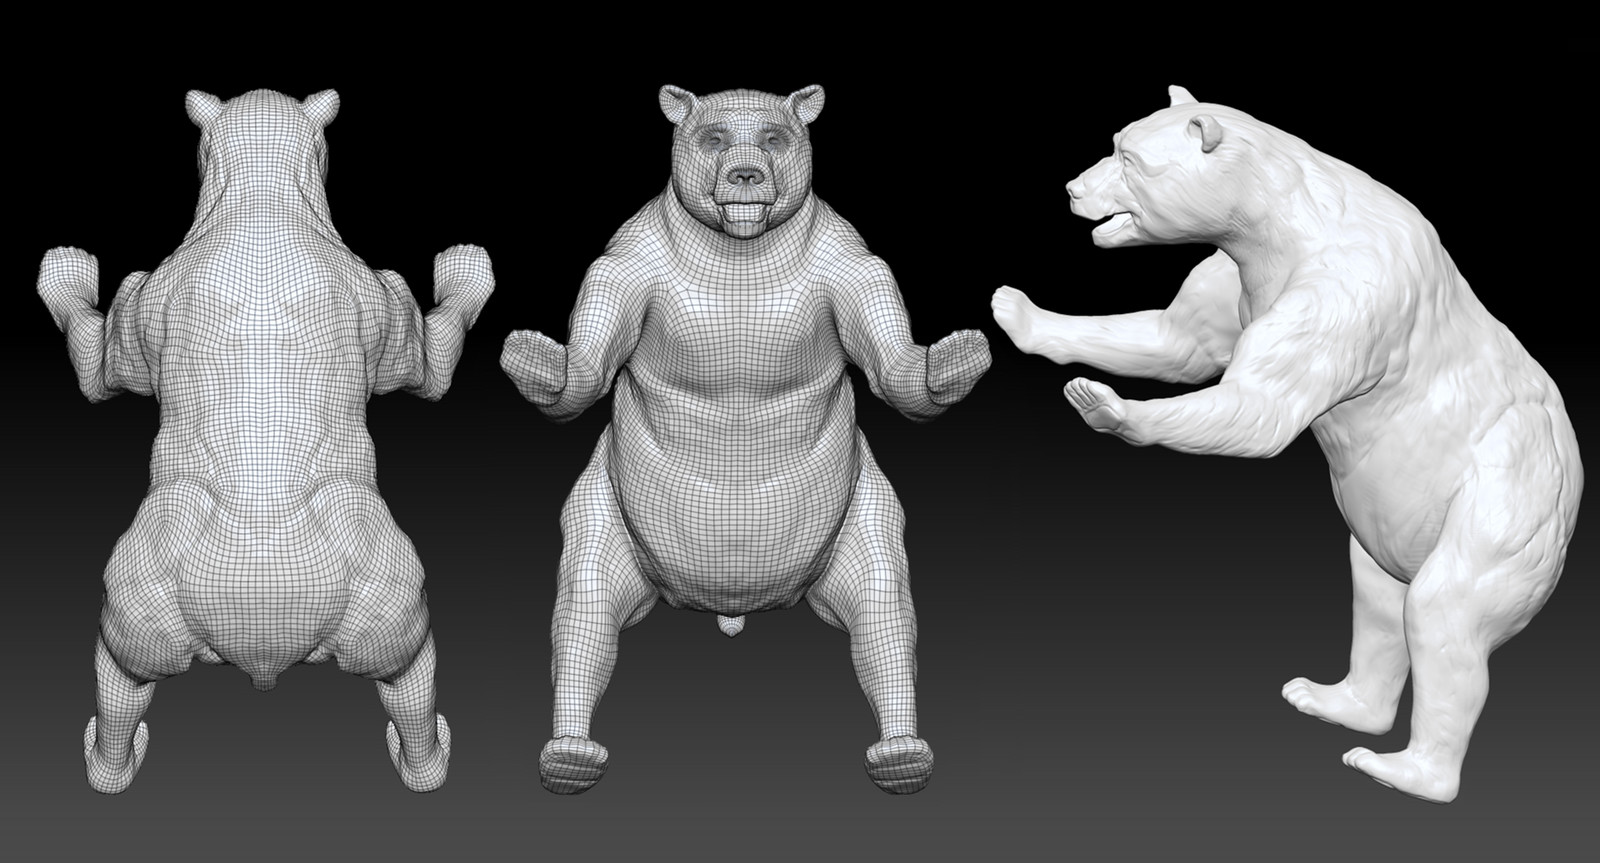 ZBrush sculpt with clean topology.